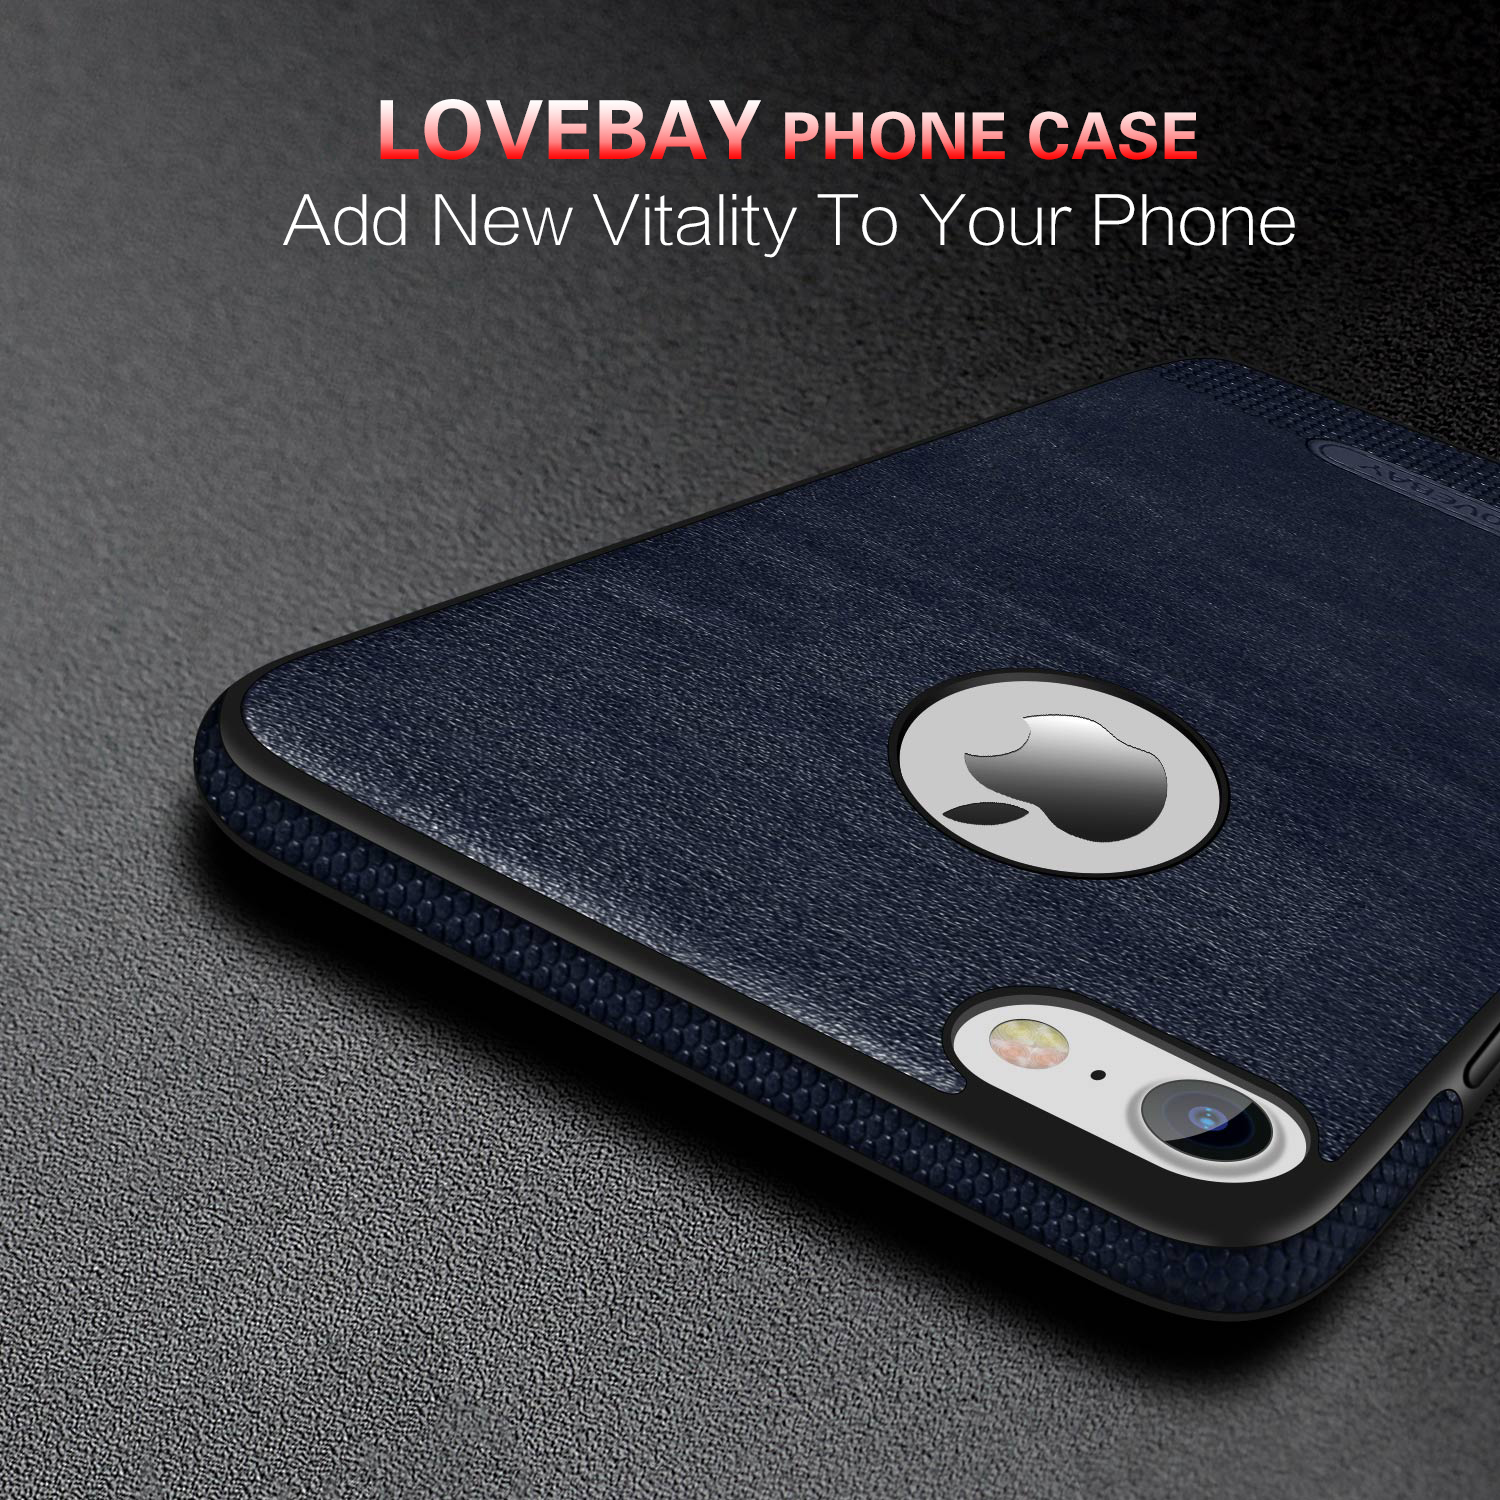 reputable site 8182a b8fda Details about Luxury Ultra-thin Slim Soft PU Leather Back Case Cover For  iPhone 5S 6S 7 Plus X